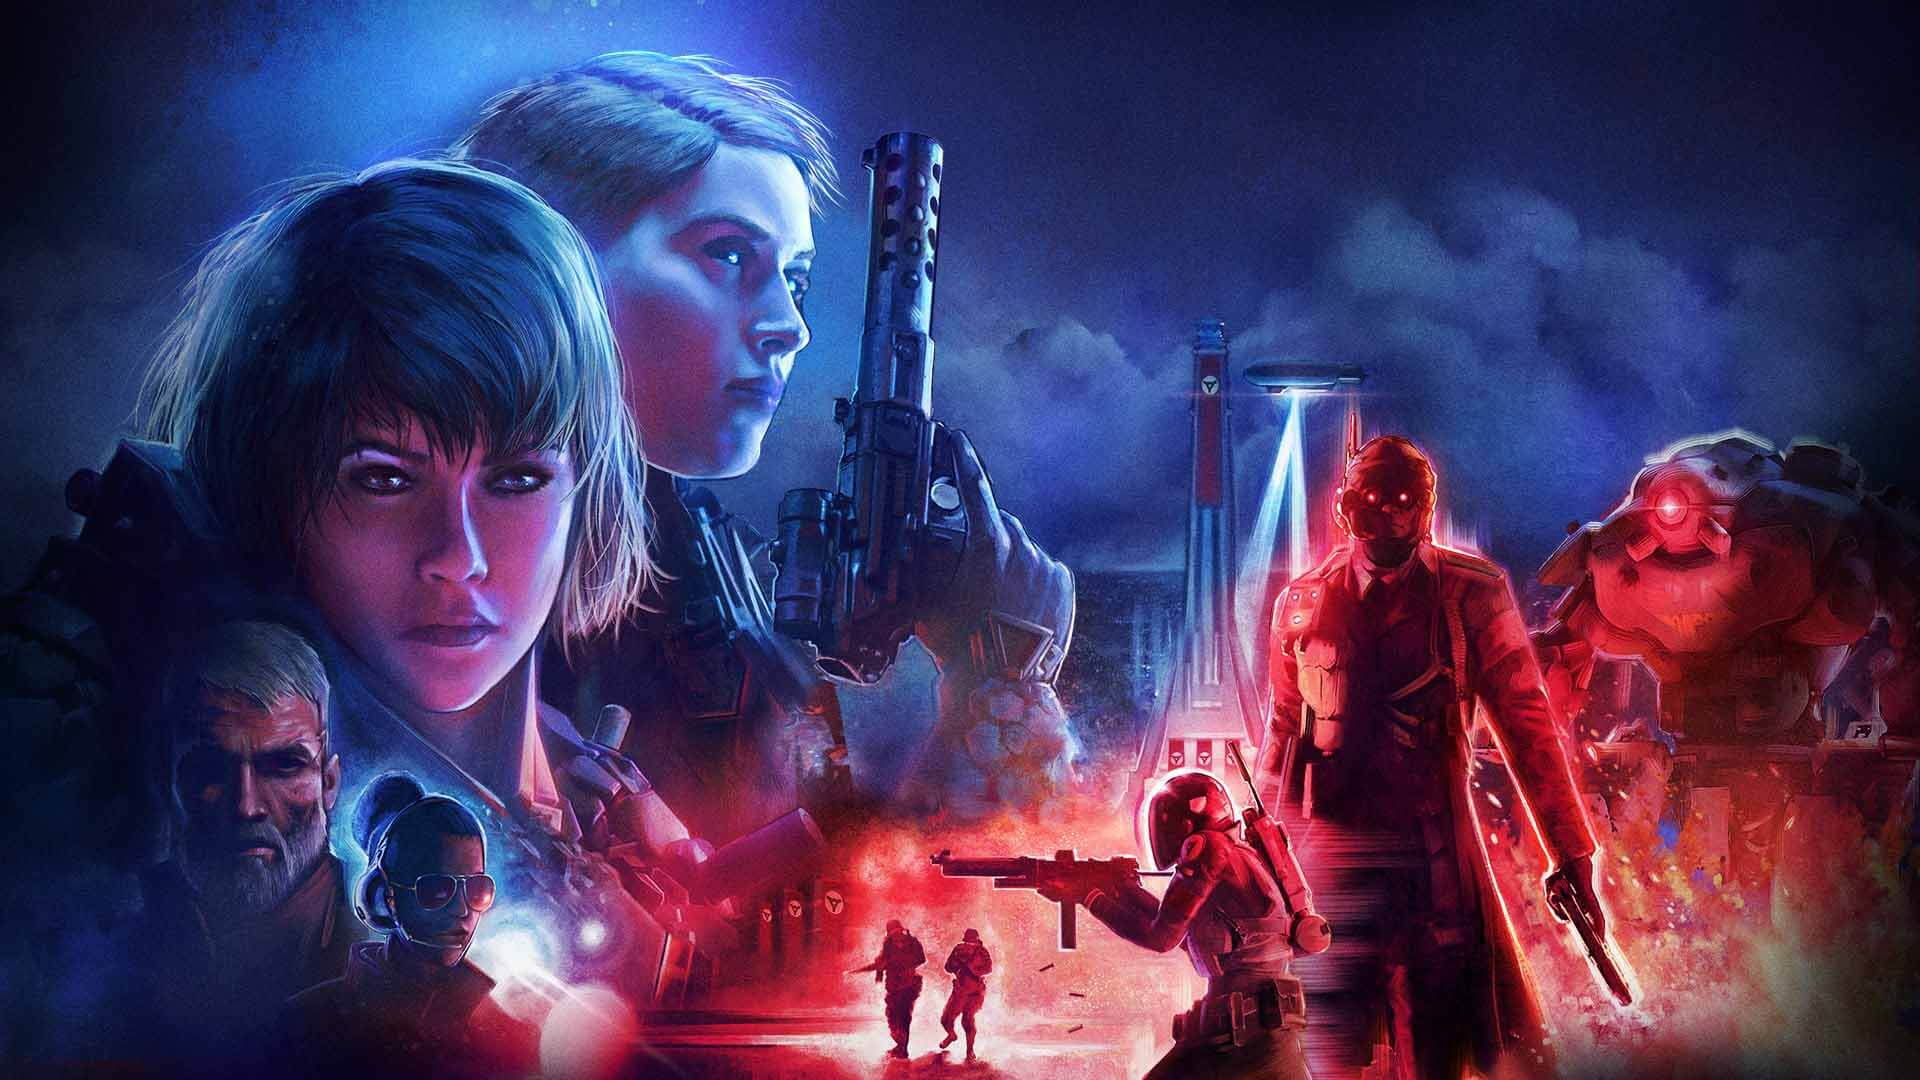 wolfenstein youngblood machine mages arkan studios review